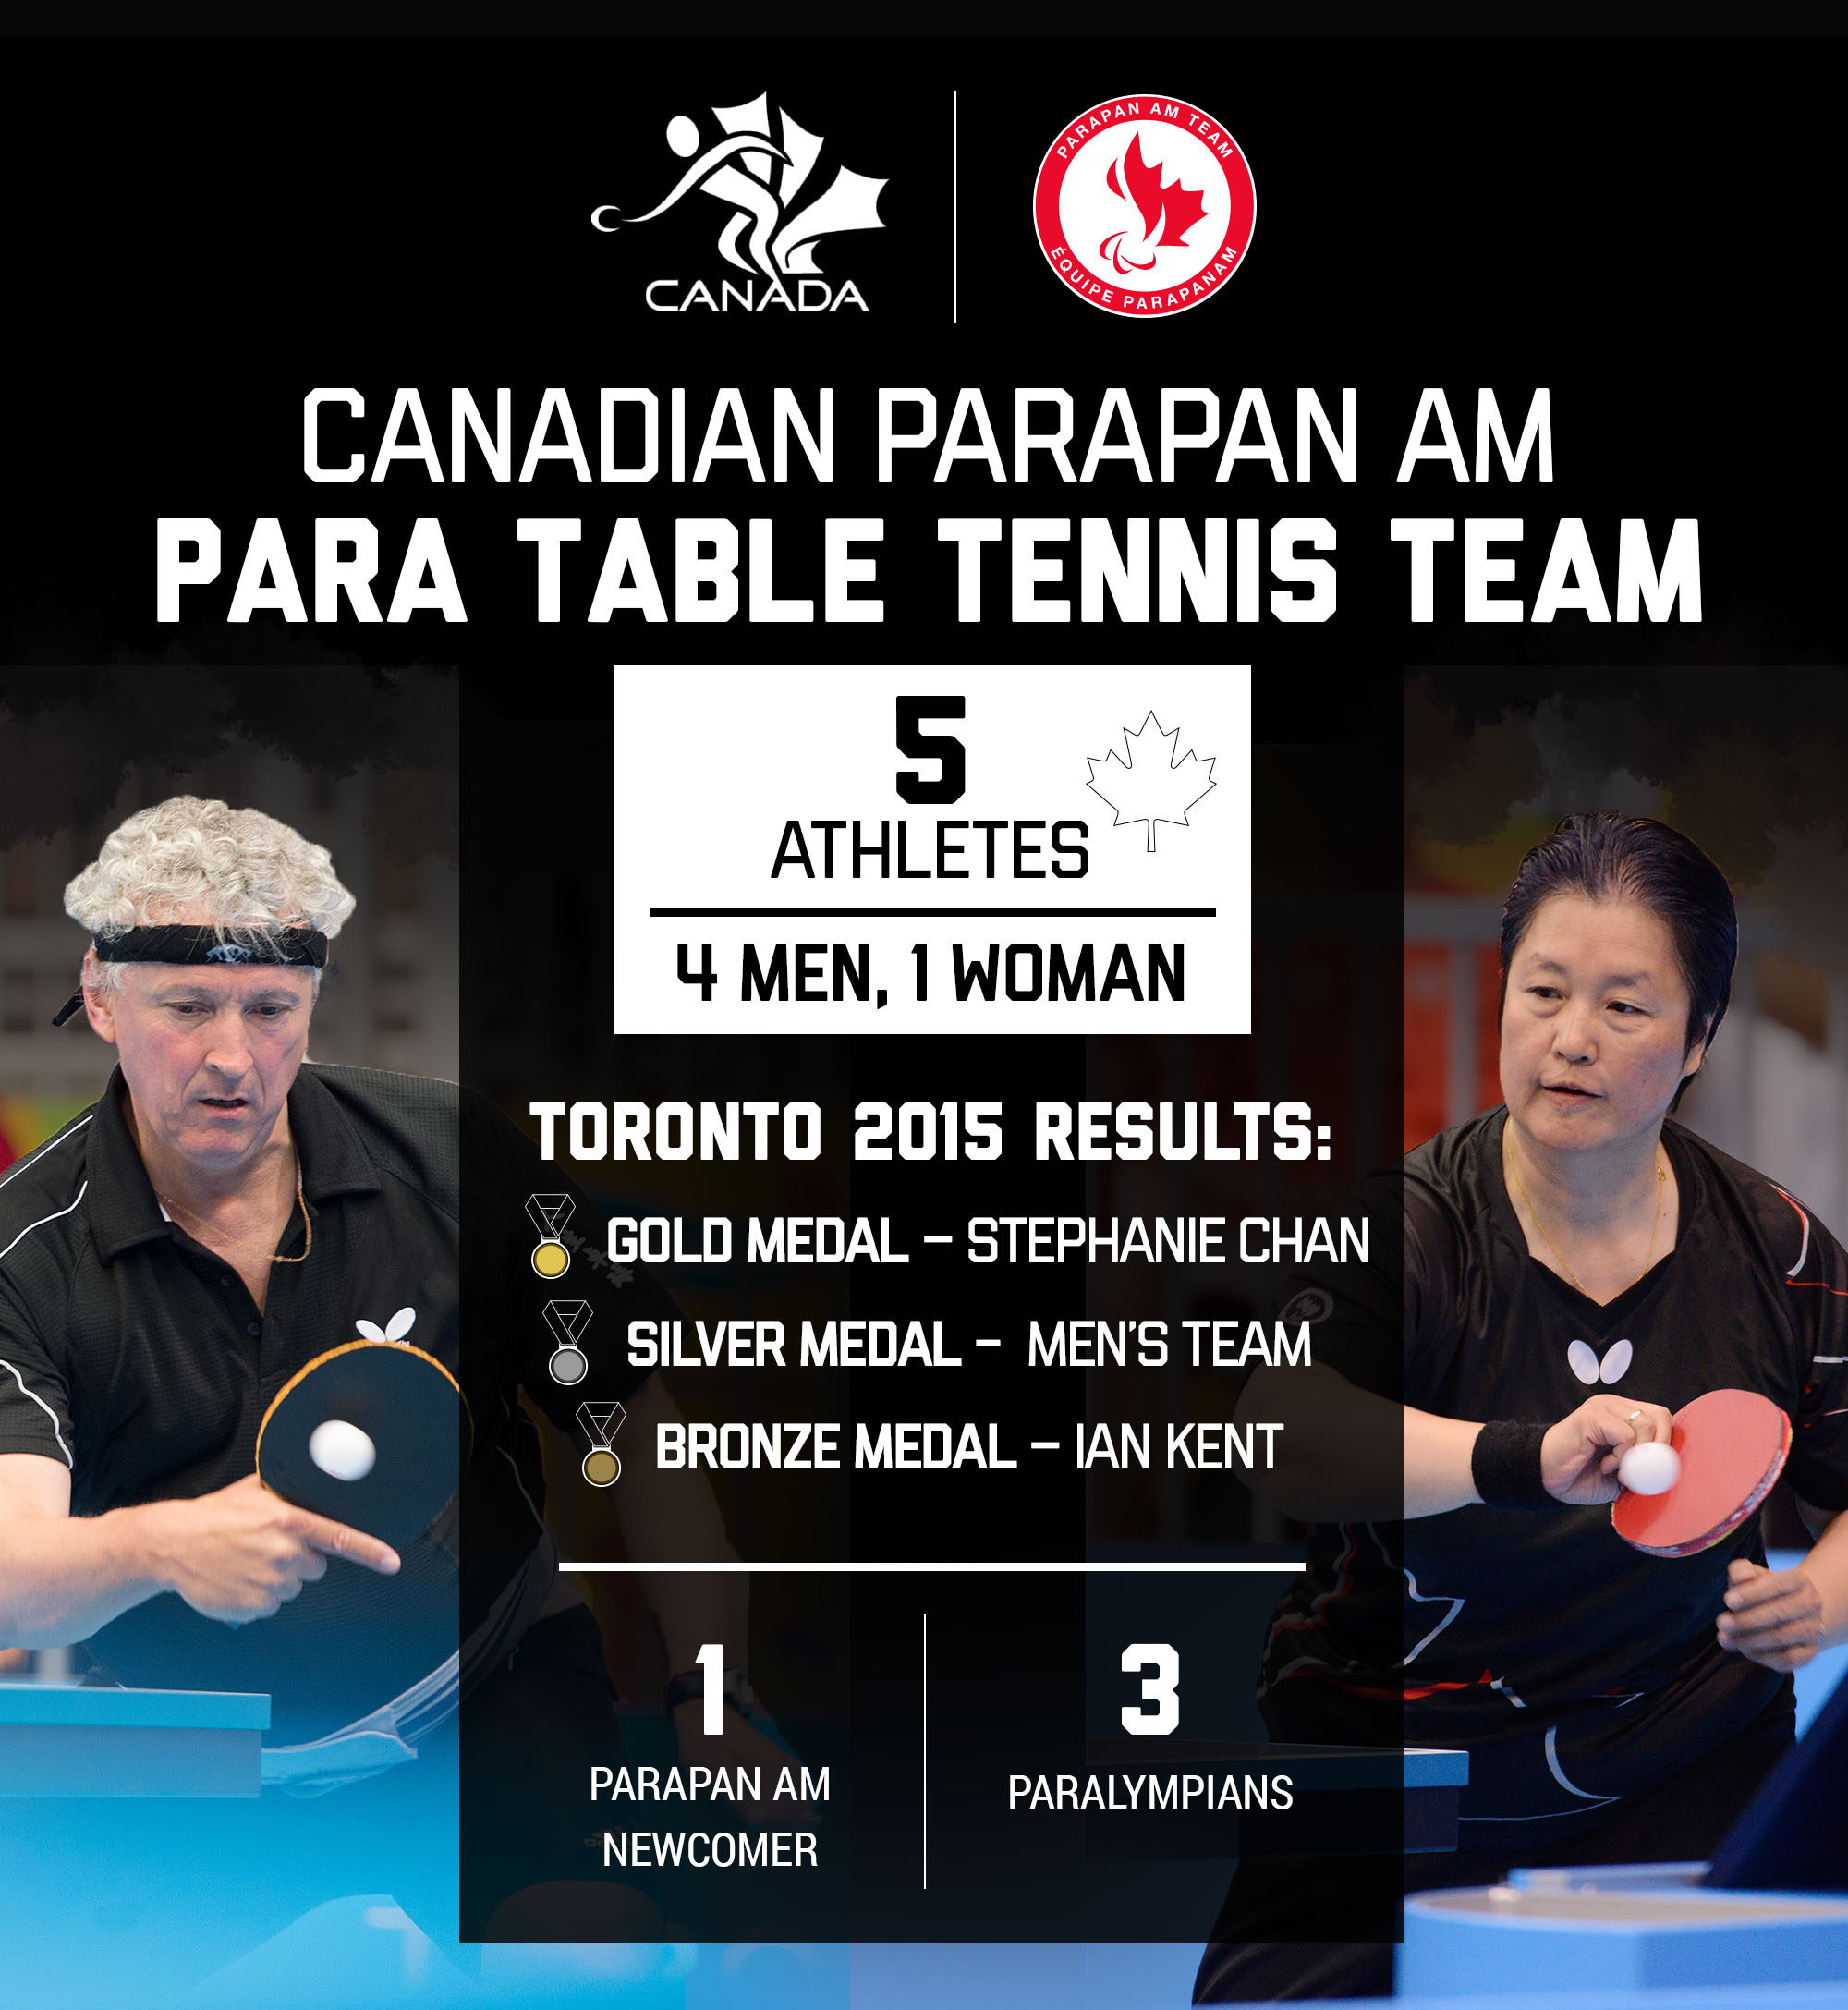 A graphic showing the make-up of the Canadian Parapan Am table tennis team